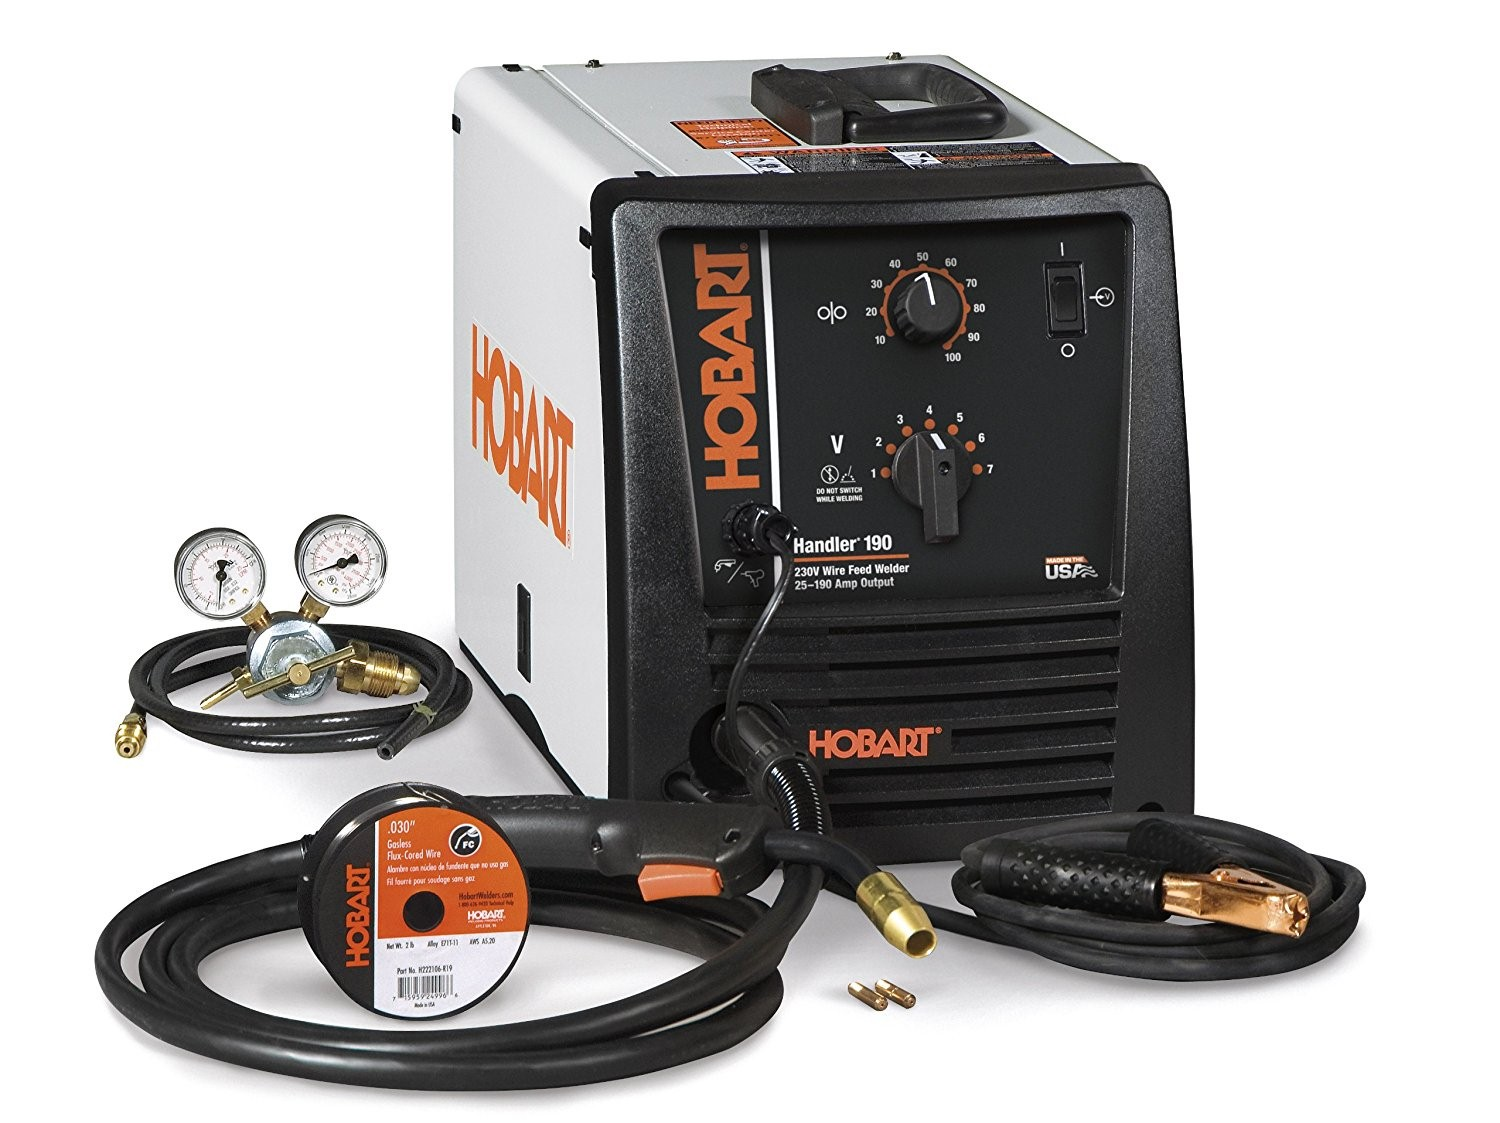 6 best mig welder for the money (2019) reviews \u0026 buying guide